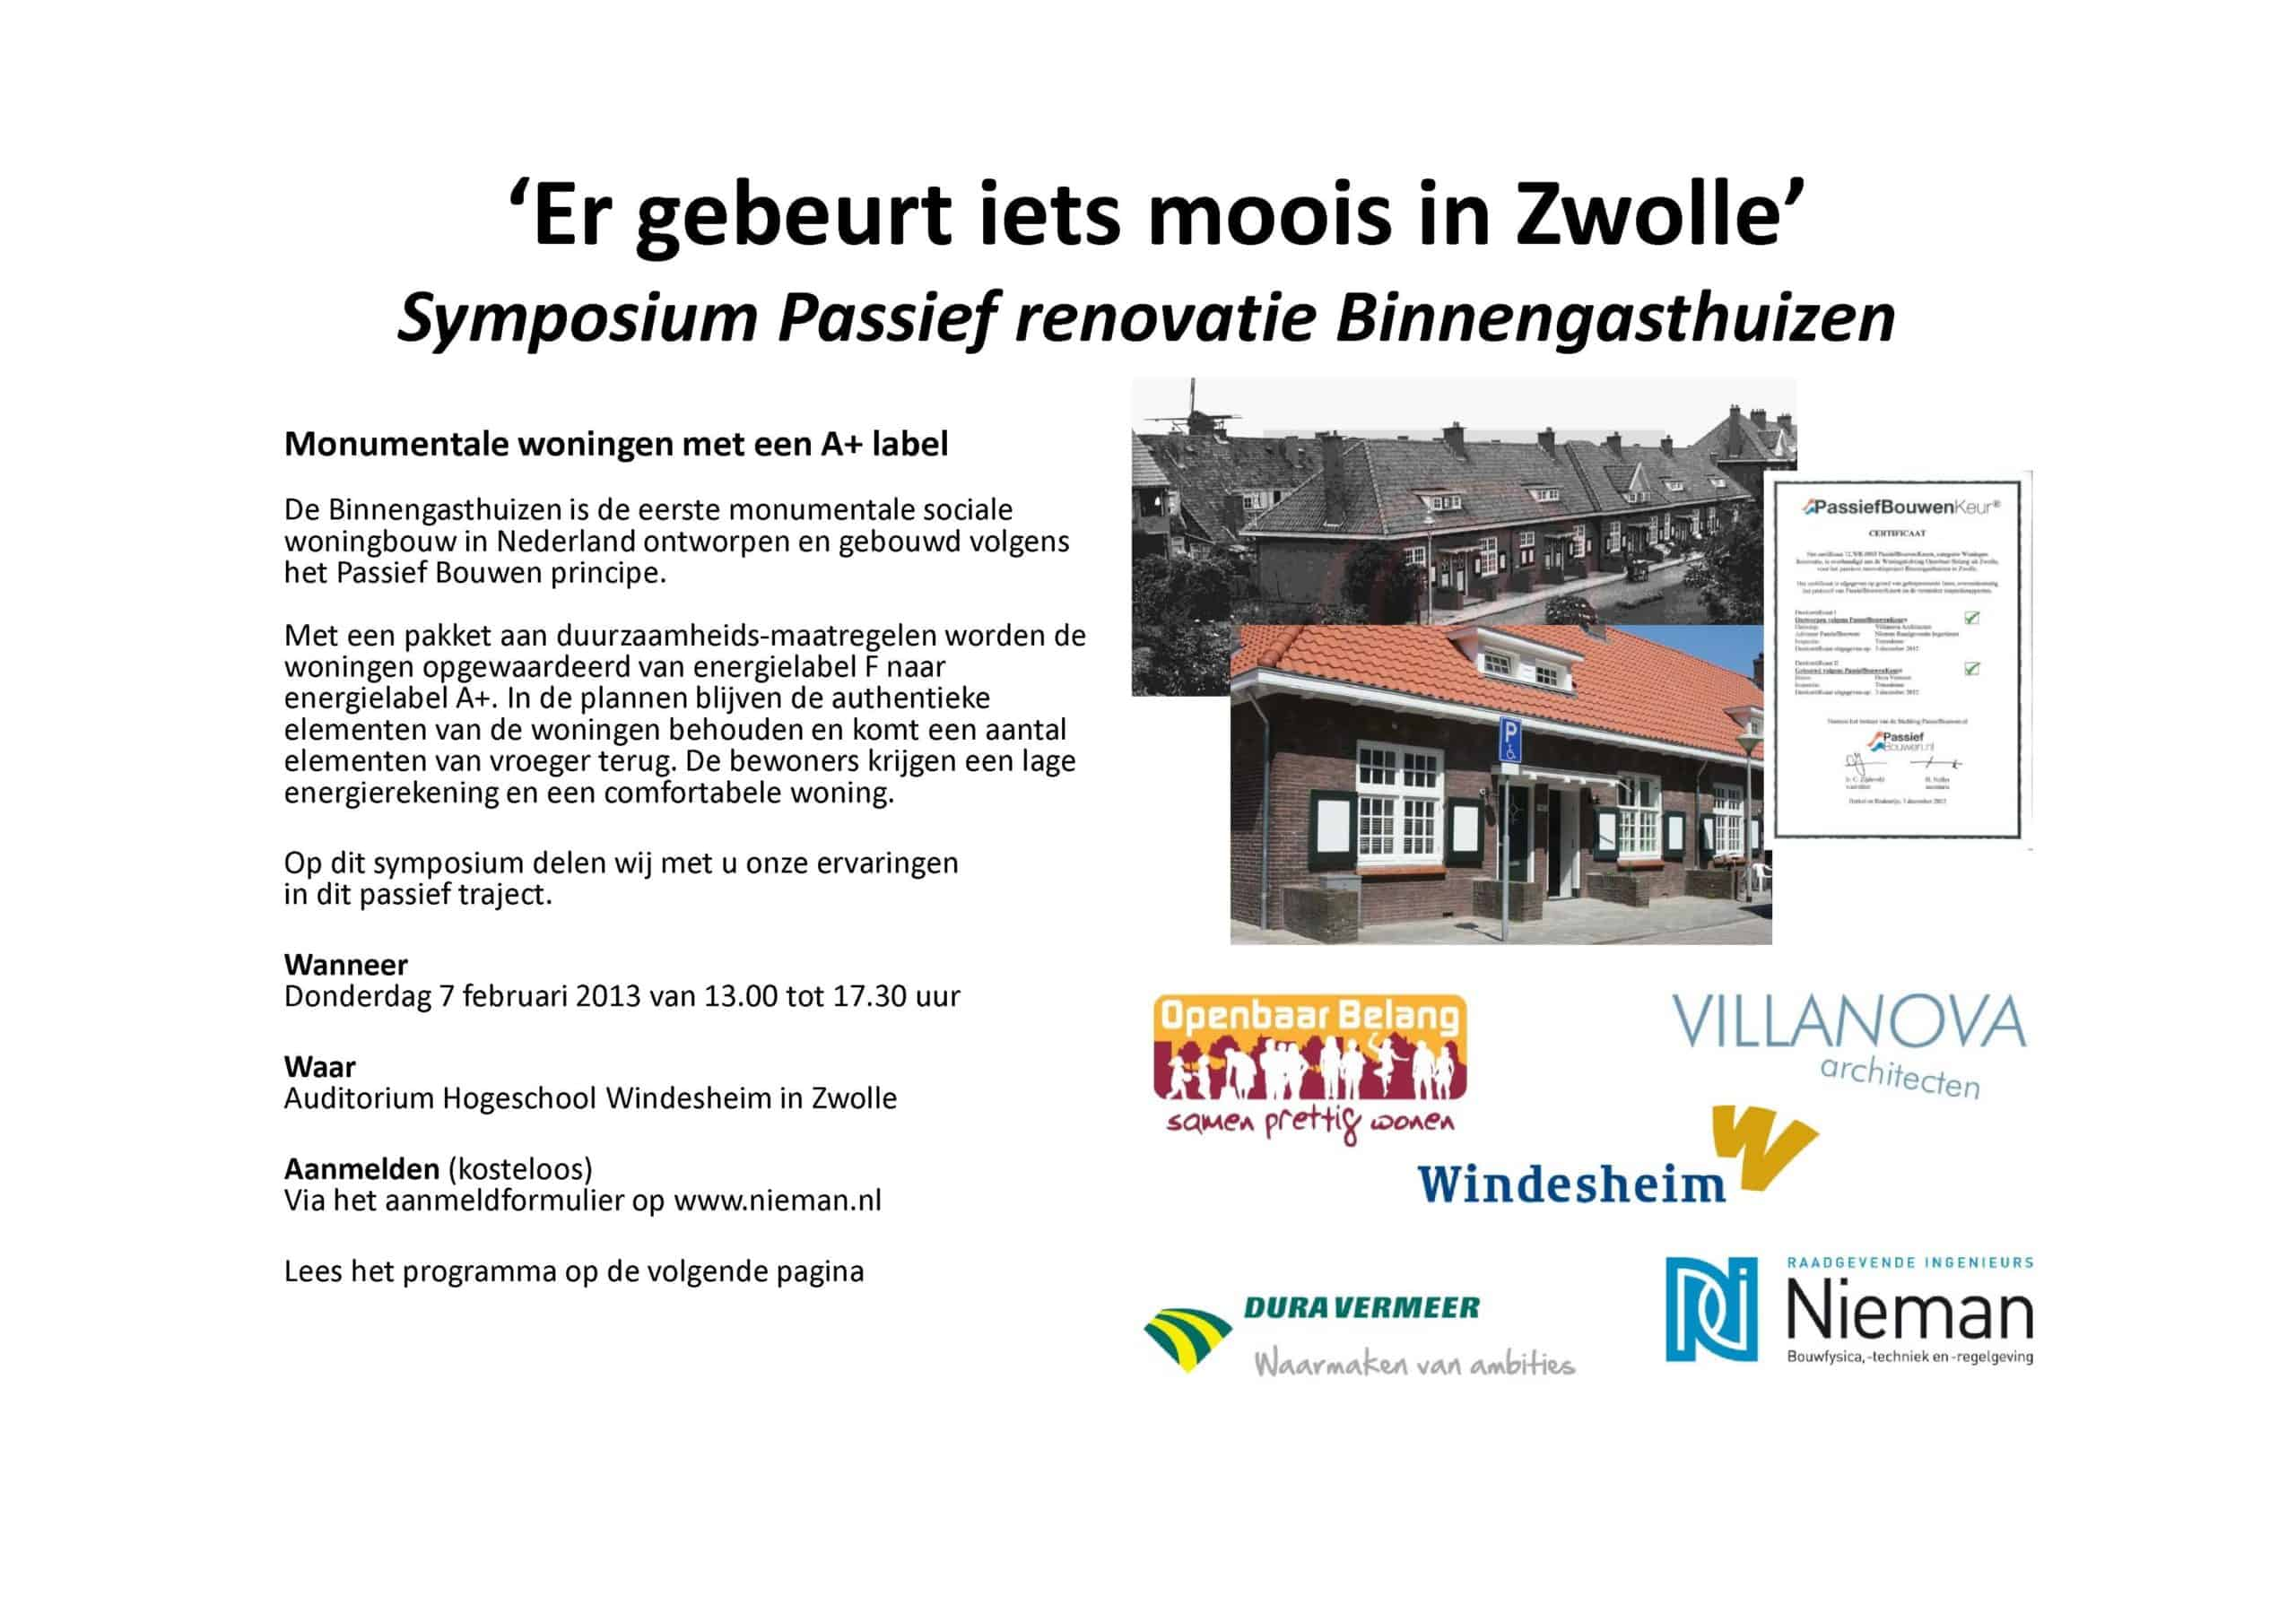 Flyer-Symposium-Er-gebeurt-iets-moois-in-Zwolle_1-1-scaled